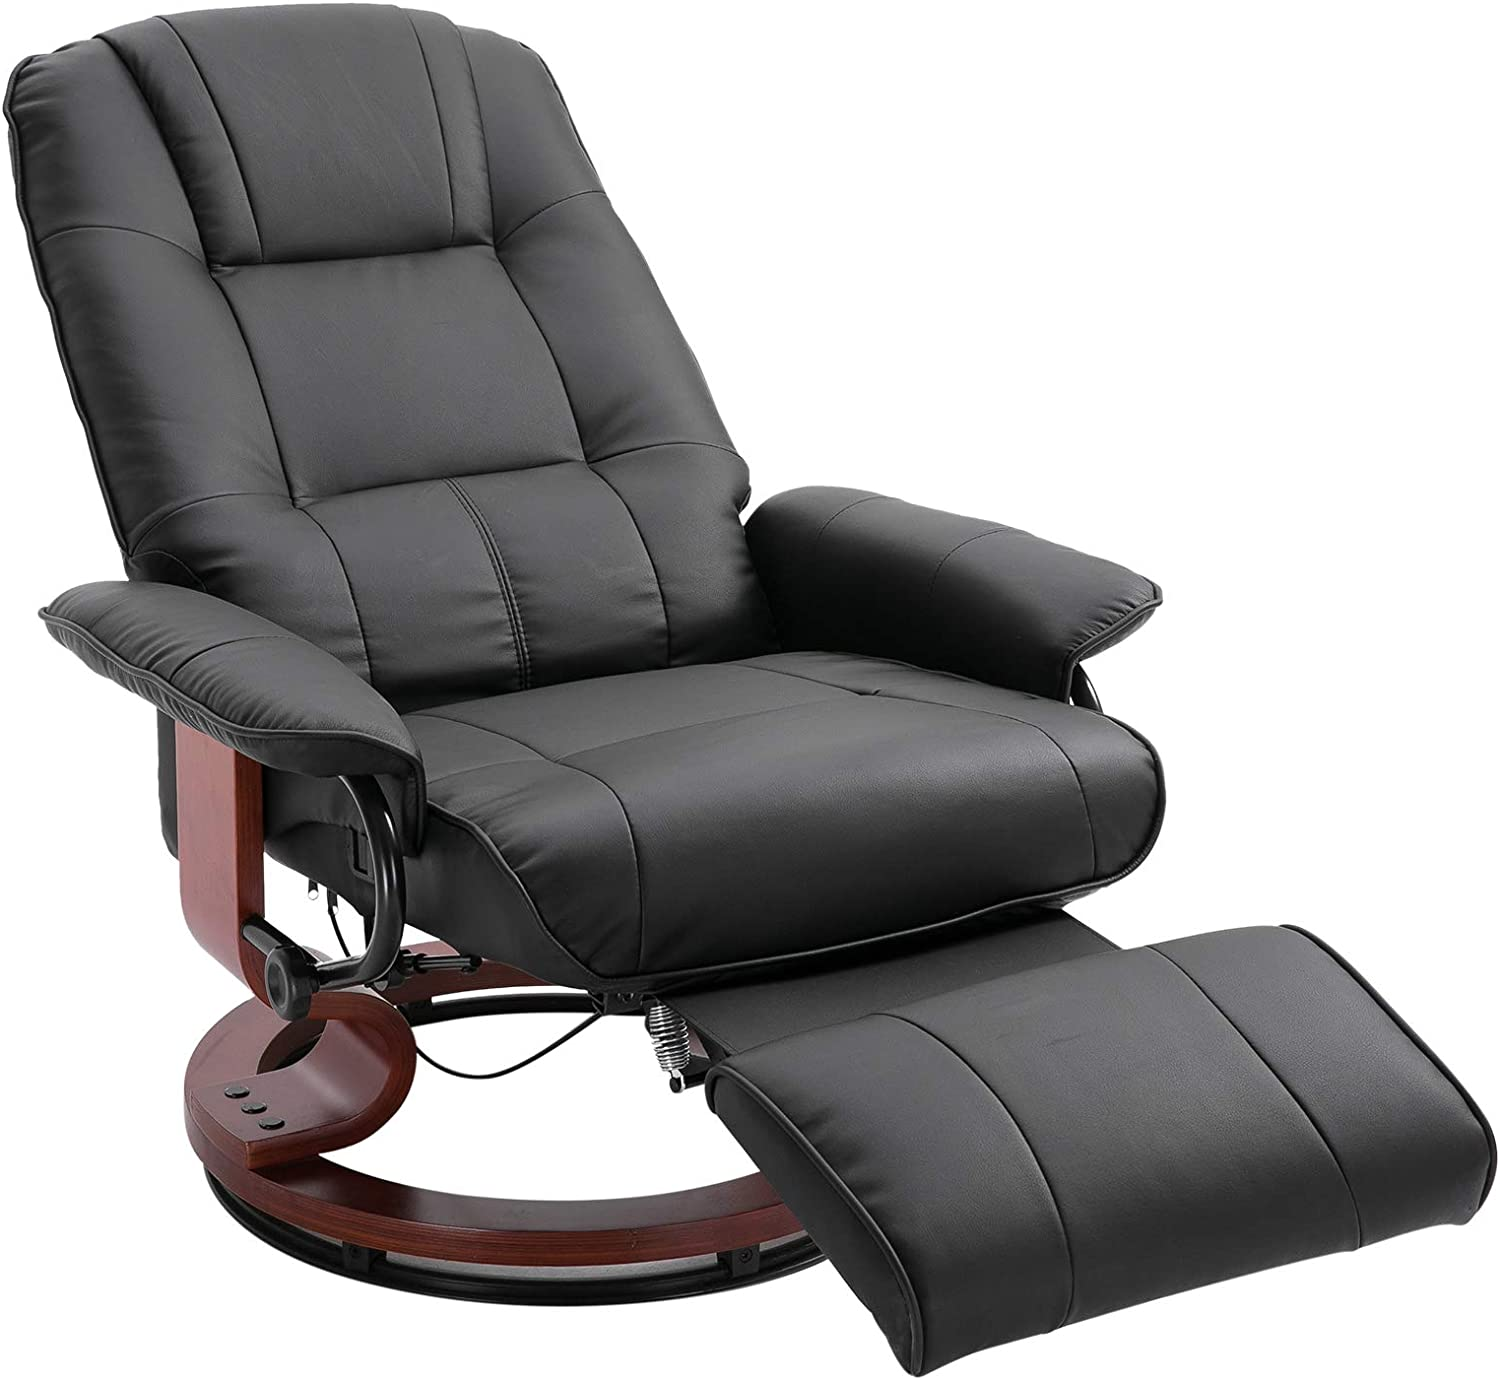 Amazon Com Homcom Faux Leather Adjustable Manual Swivel Base Recliner Chair With Comfortable And Relaxing Footrest Black Furniture Decor